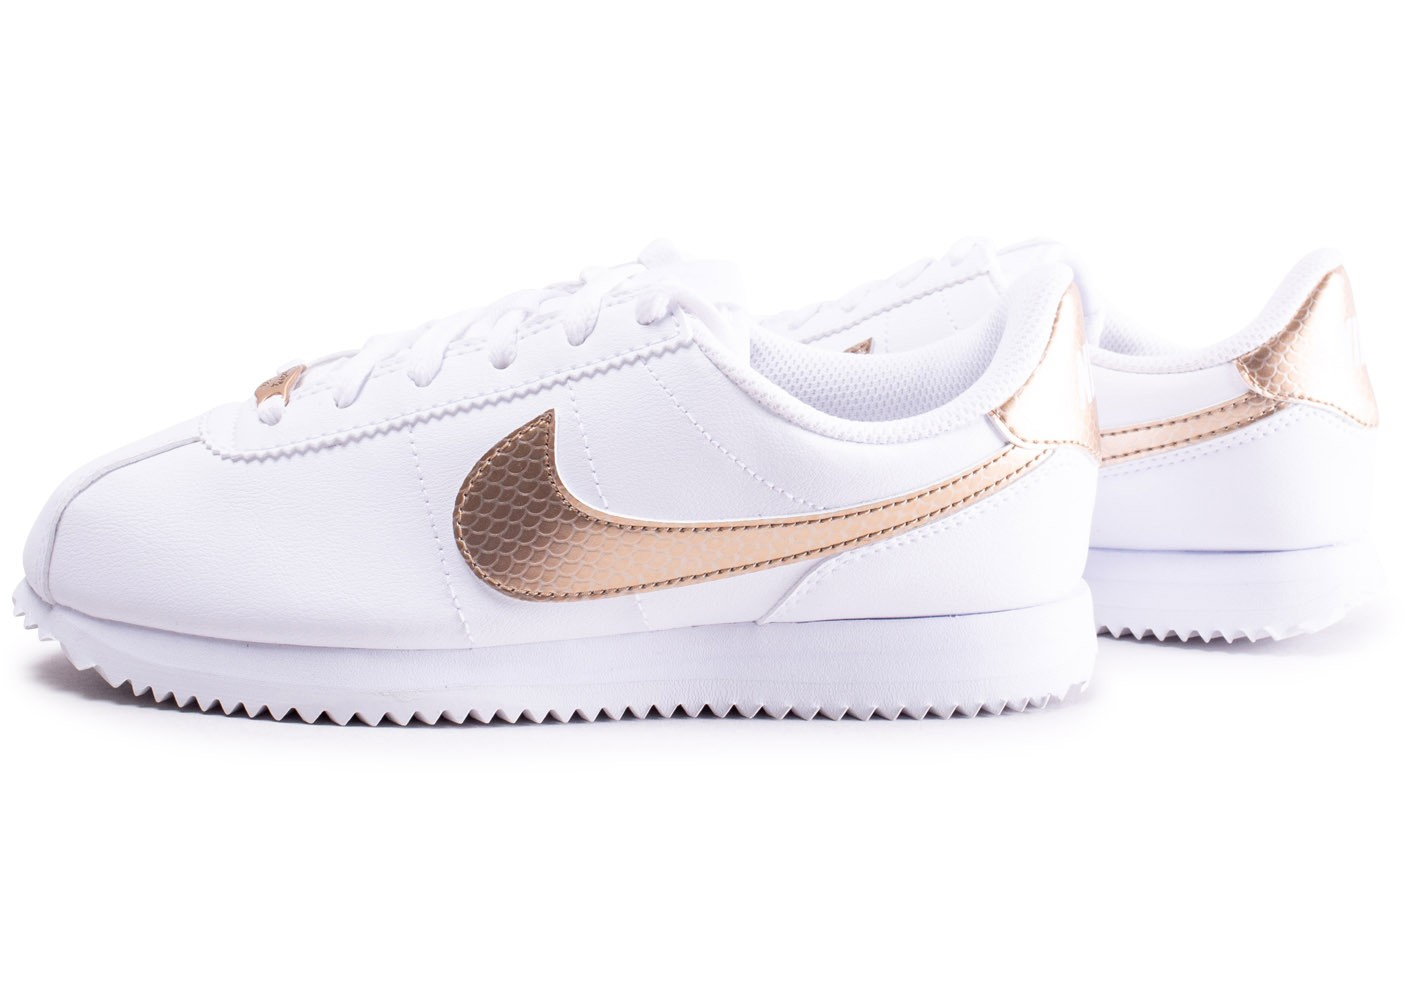 Nike Cortez Basic blanche et or - Chaussures Baskets femme ...